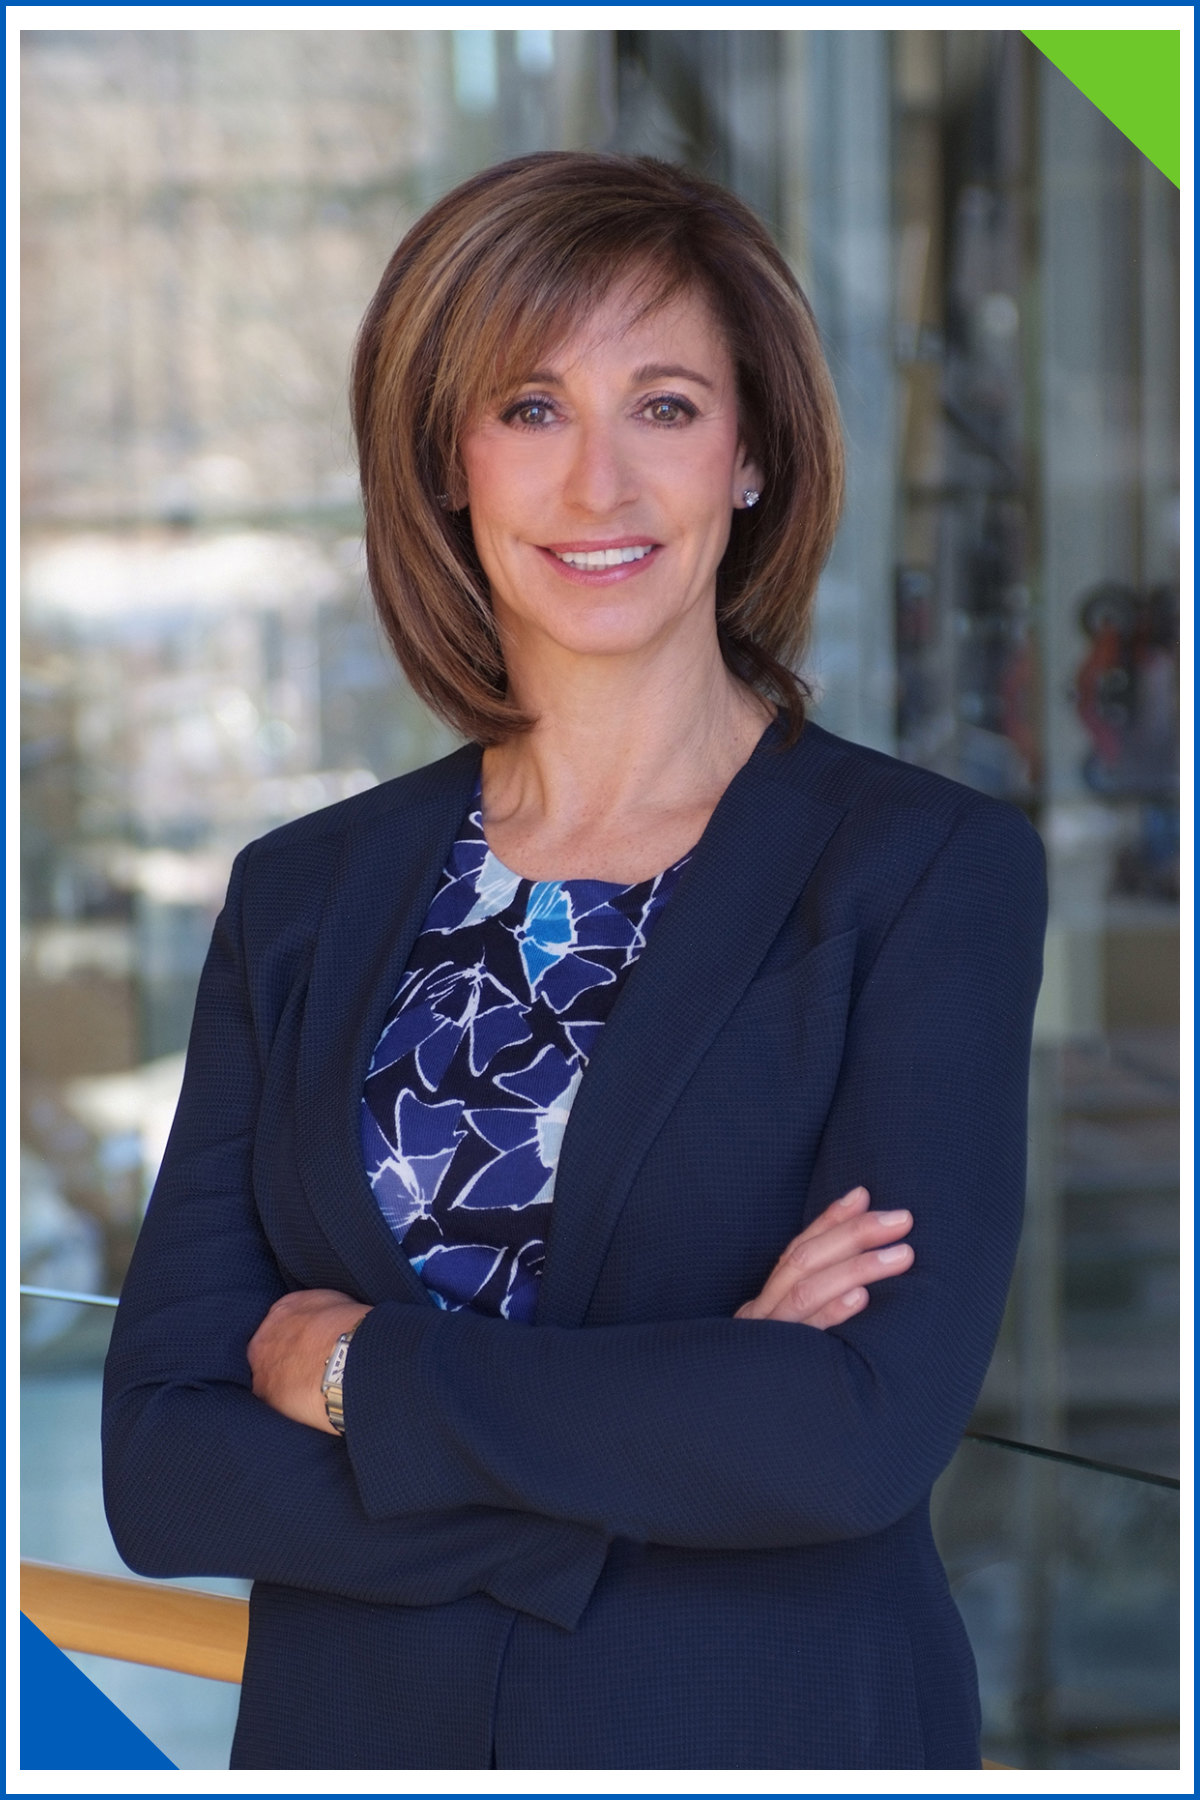 """CEO: Judith L. Pearson - Ms. Pearson, who serves as President & CEO of the company, has more than 37 years of experience in the insurance industry. Among other things, she was a pioneer in the development of Directors and Officers Liability Insurance with AON Corporation's Financial Services Group (FSG); she has underwriting experience for AIG and CHUBB; and she was a co-founder of ARIS Title Insurance Corporation (sold to a Bermuda based insurance company), which was the world's first insurance company offering title insurance on personal property, including fine art and collectibles. She has been a frequent speaker at professional meetings, has authored numerous articles, and she has received national recognition in publications such as """"the Wall Street Journal"""", """"the New York Times"""" and """"Wealth Management Magazine"""". In 2015 Ms. Pearson was named one of the Power 100 Leaders in the art world by Blouin/ArtInfo International for insurance innovation.LinkedIn ProfileDownload Bio"""